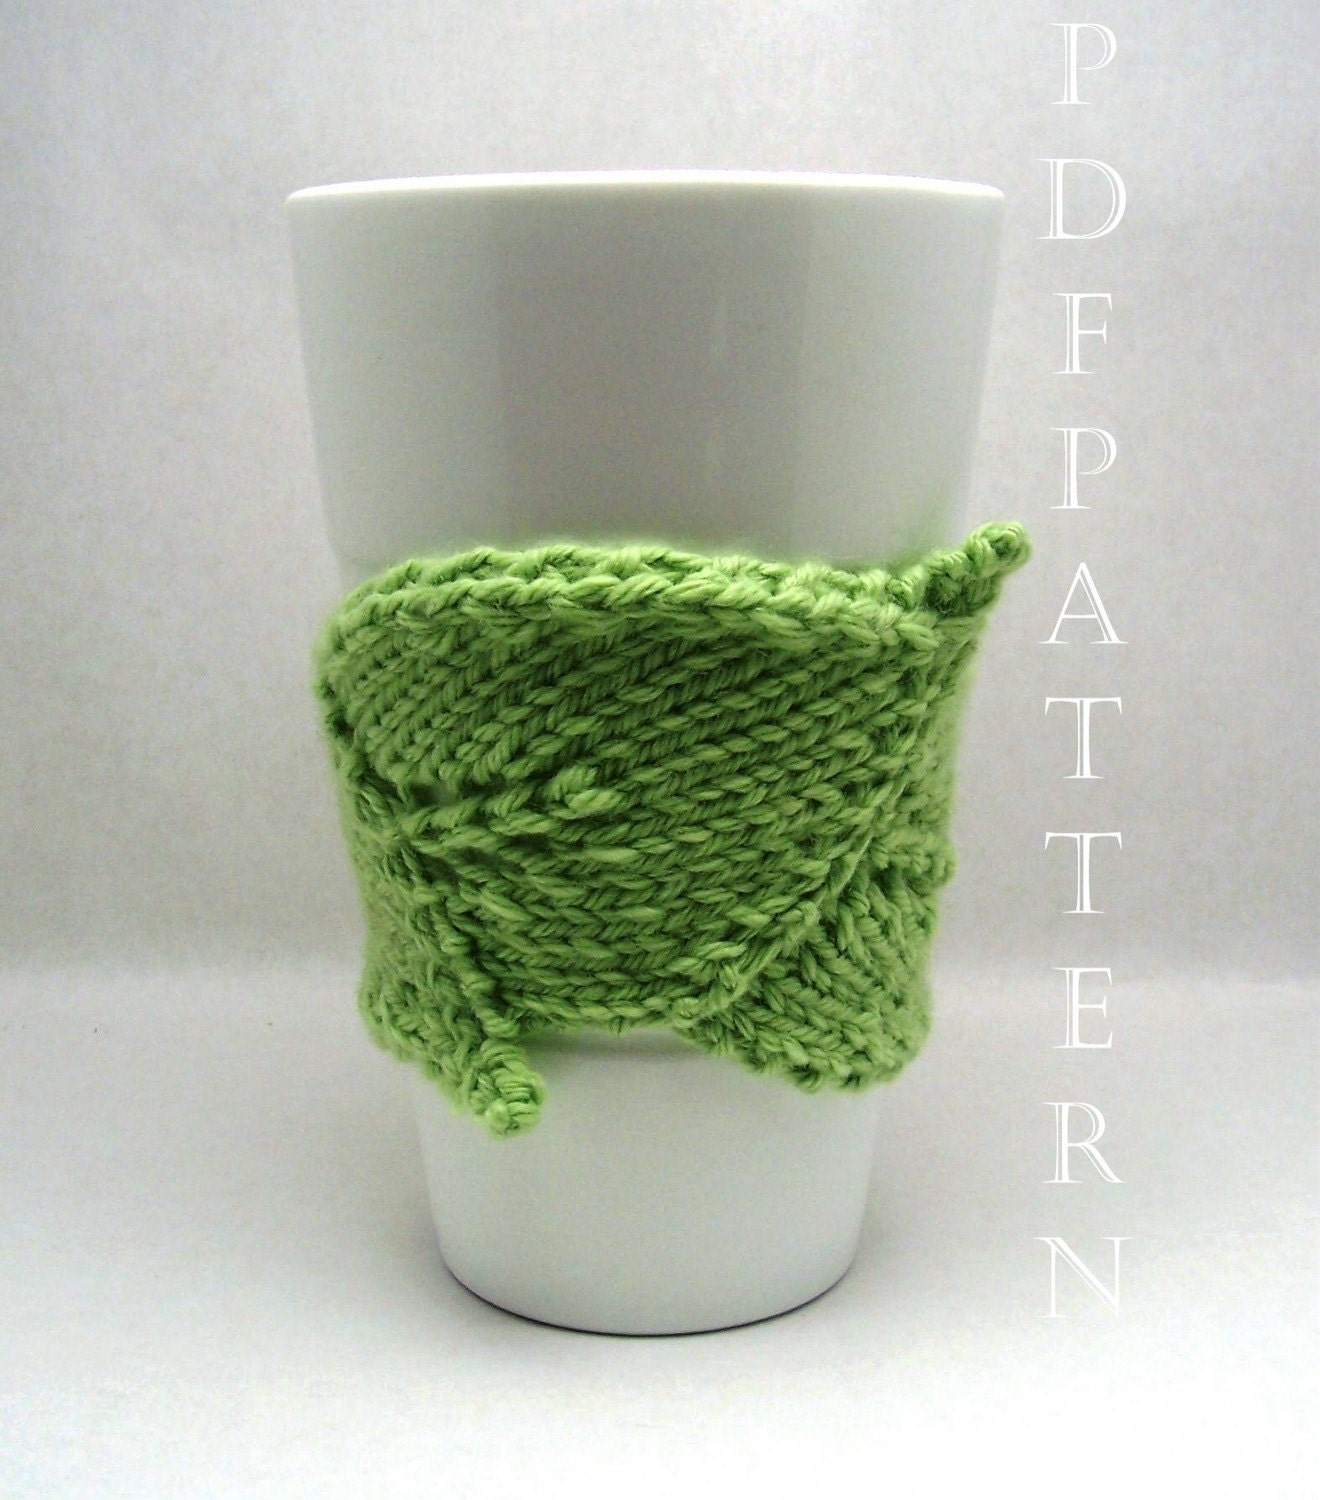 Knitting Pattern Leaf : Leaf Cuddler PDF Knitting Pattern